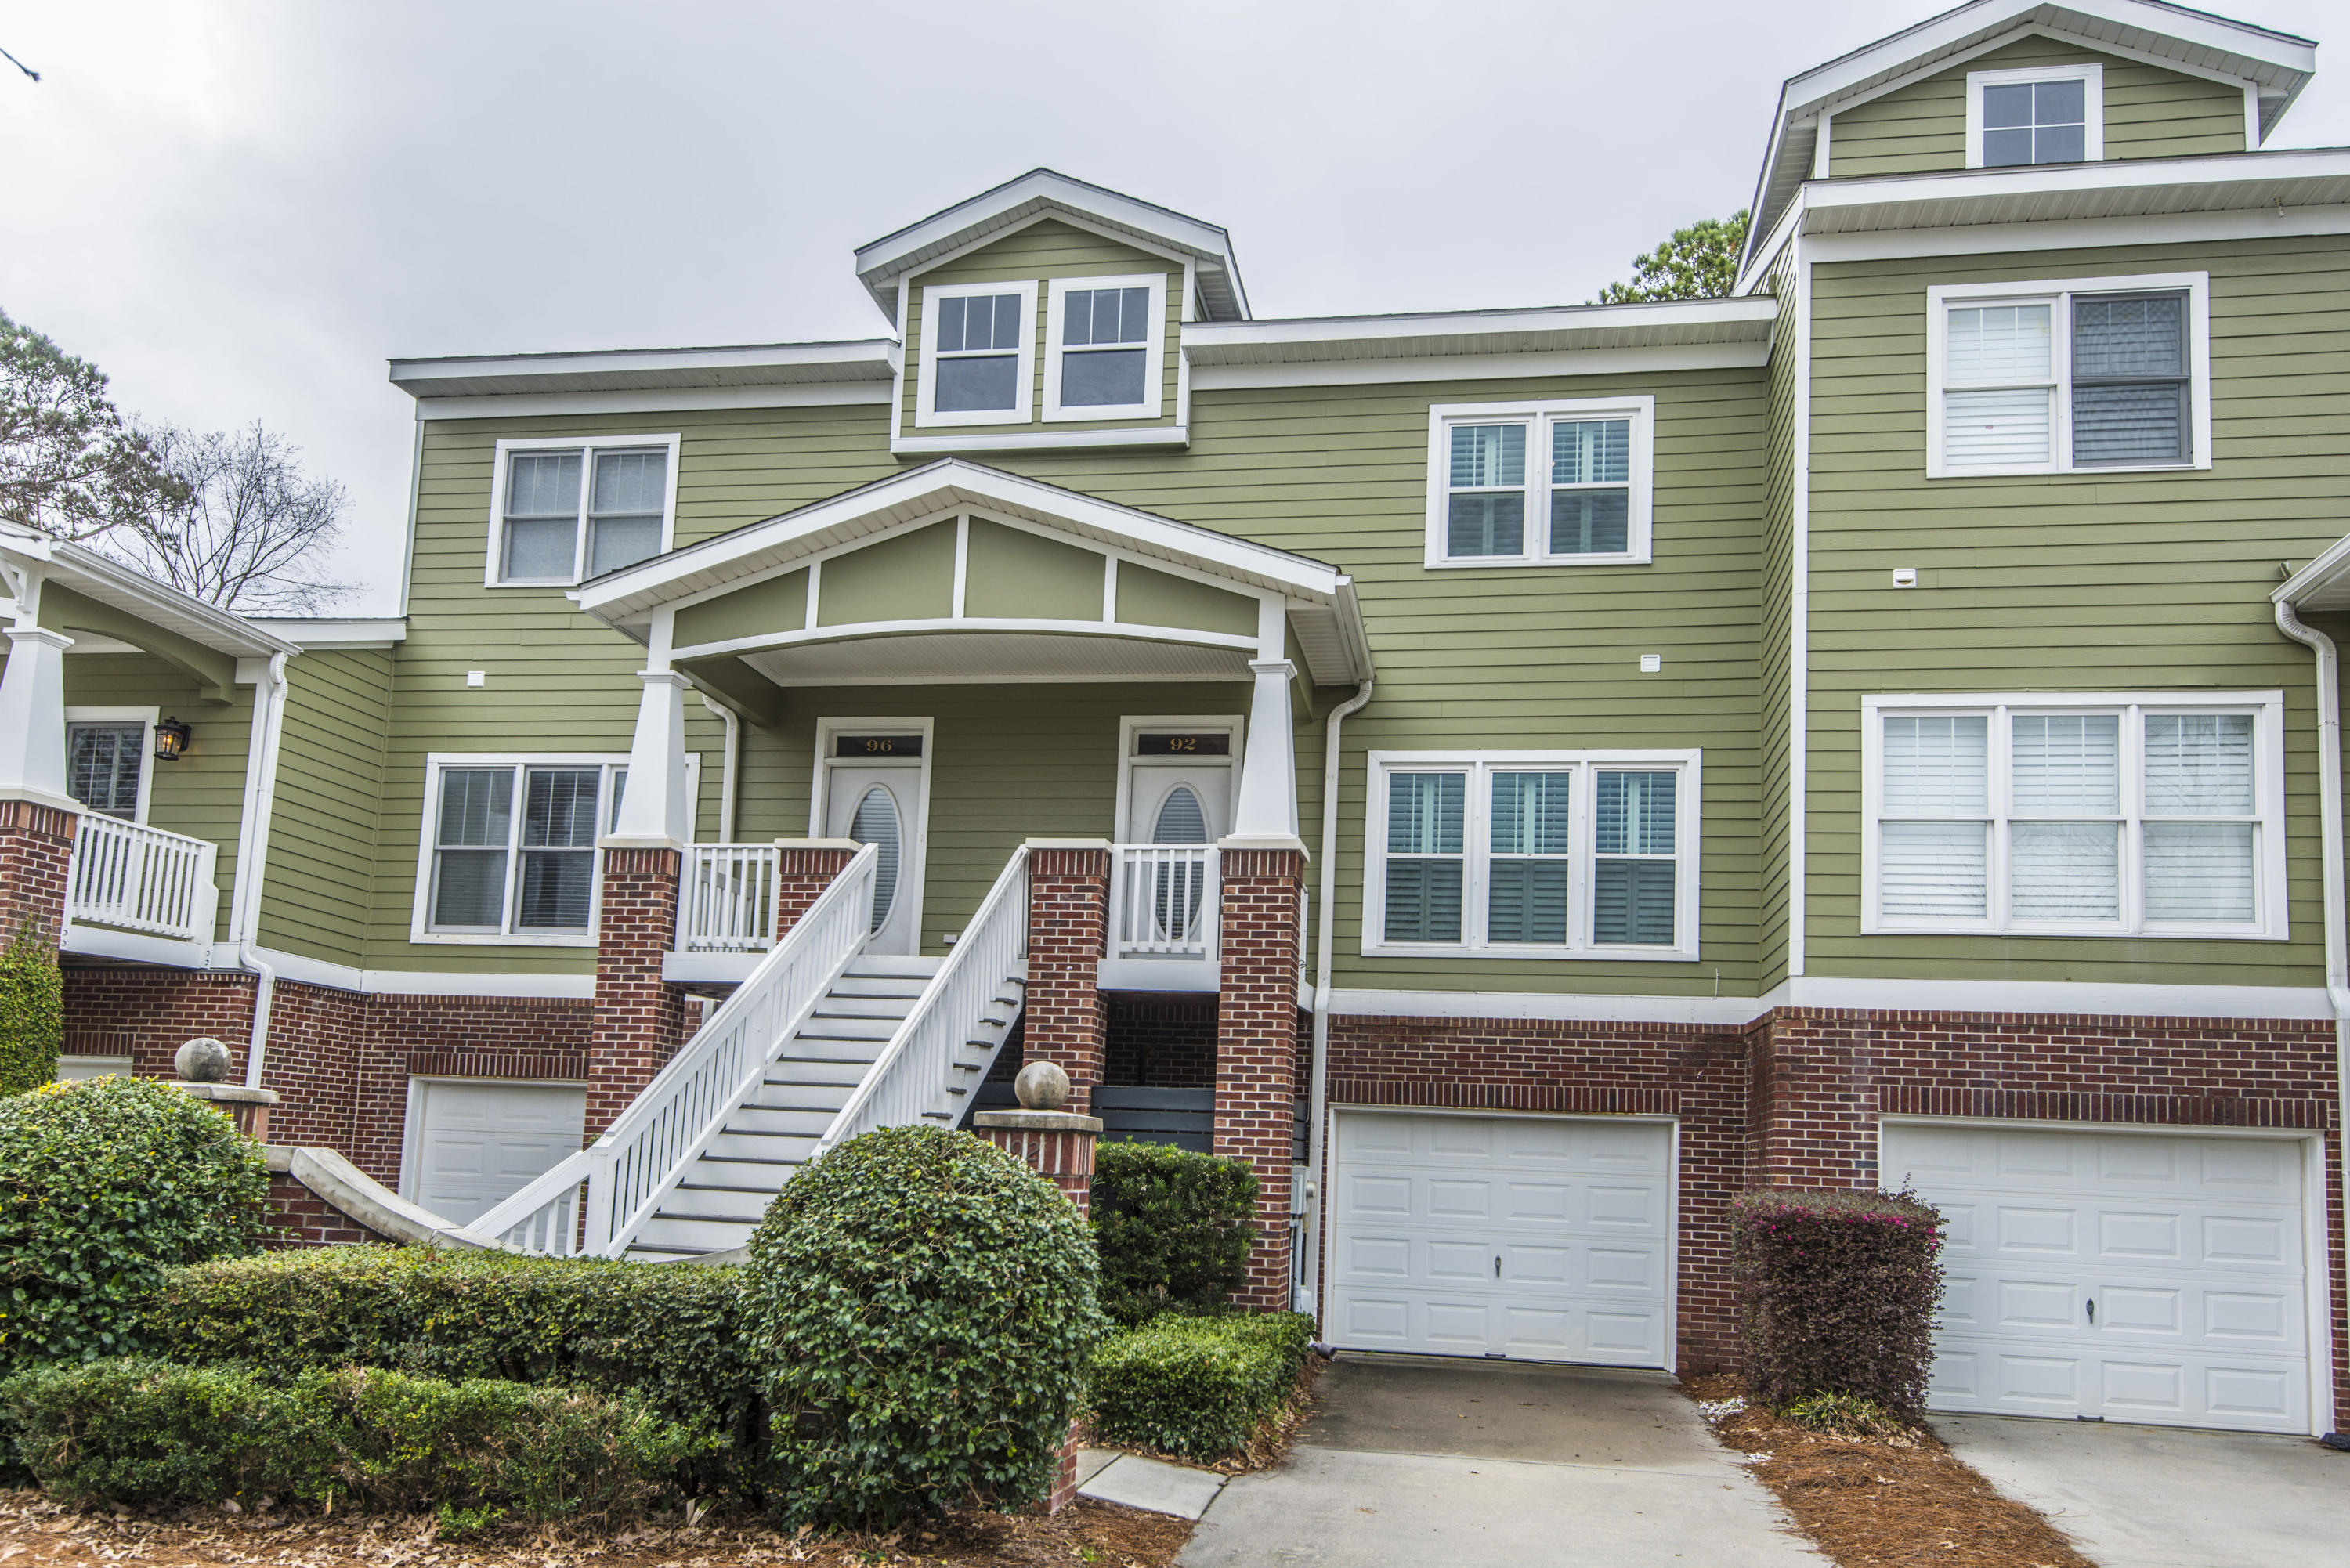 Etiwan Pointe Homes For Sale - 92 Salty Tide, Mount Pleasant, SC - 30